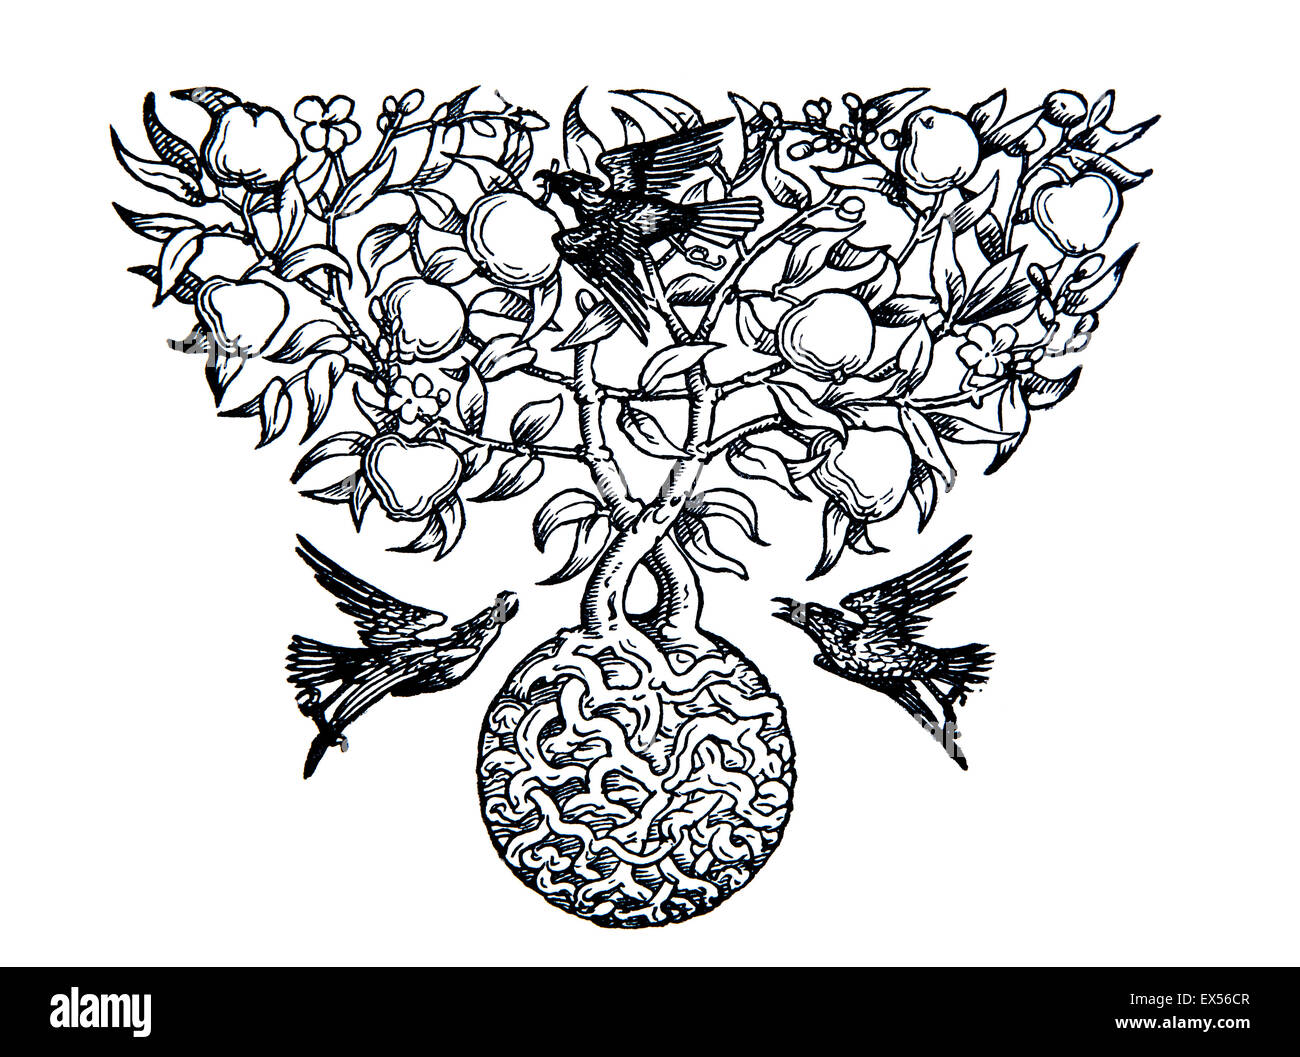 Fruit Tree Roots Stock Photos Fruit Tree Roots Stock Images Alamy